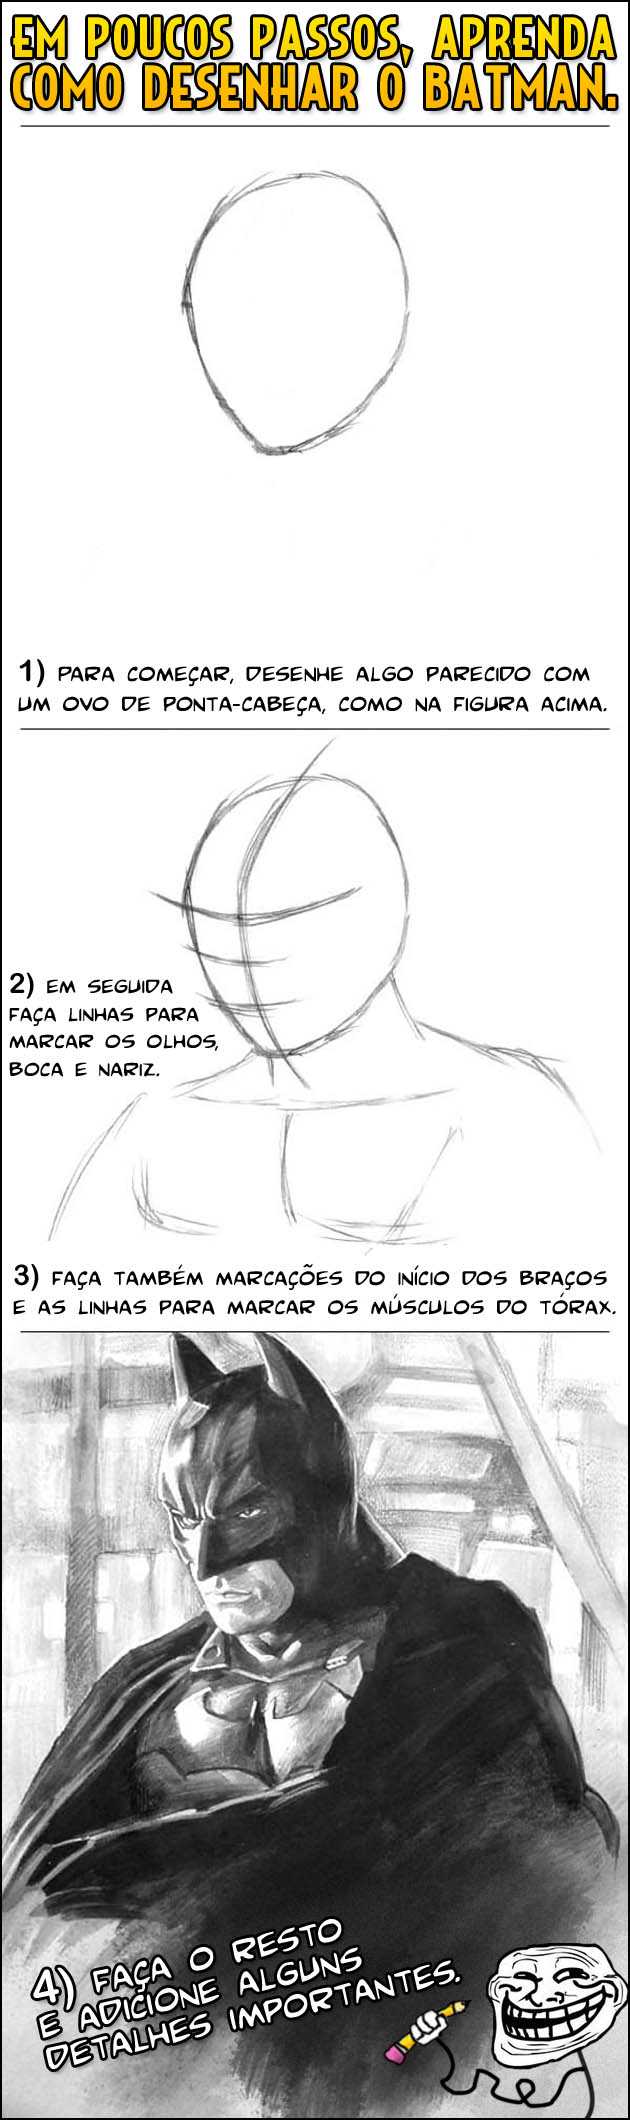 TUTORIAL BATMAN Tutorial de como desenhar o Batman